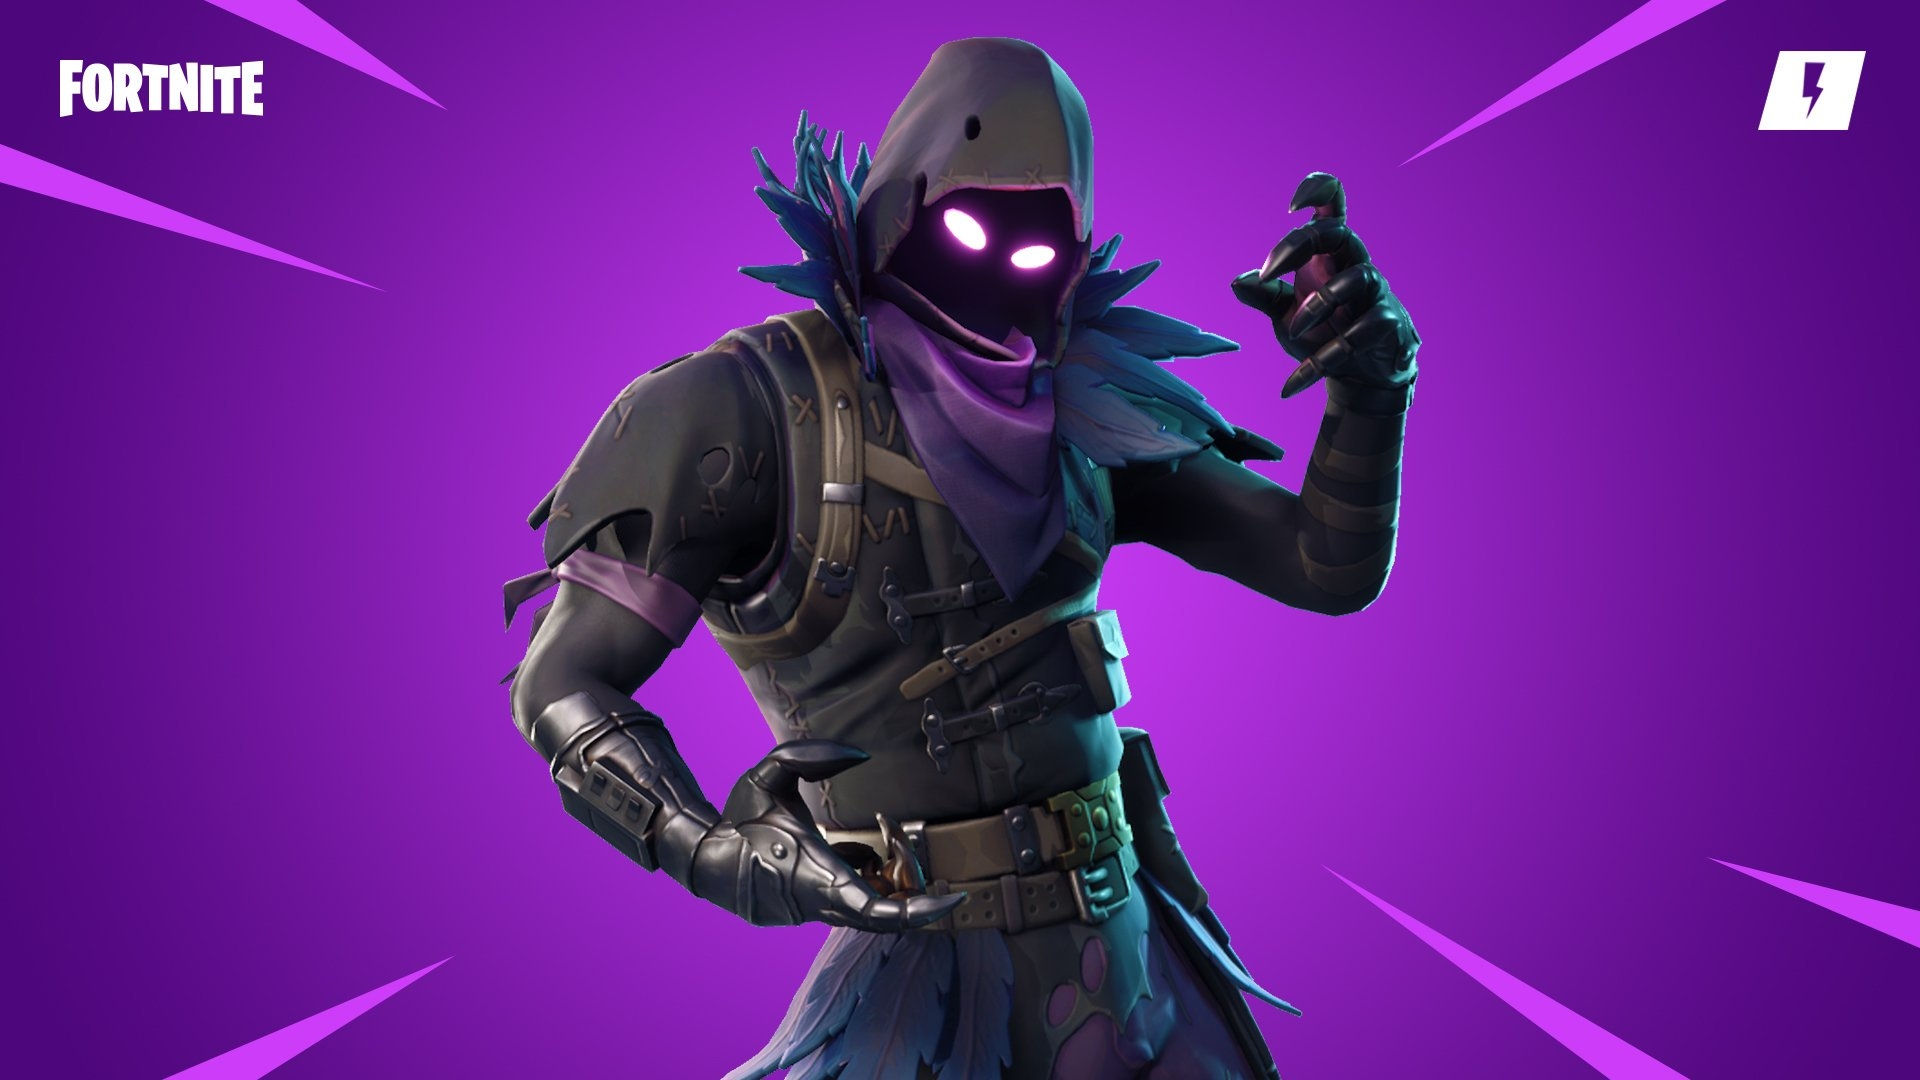 750x1334 Raven Fortnite Iphone 6 Iphone 6s Iphone 7